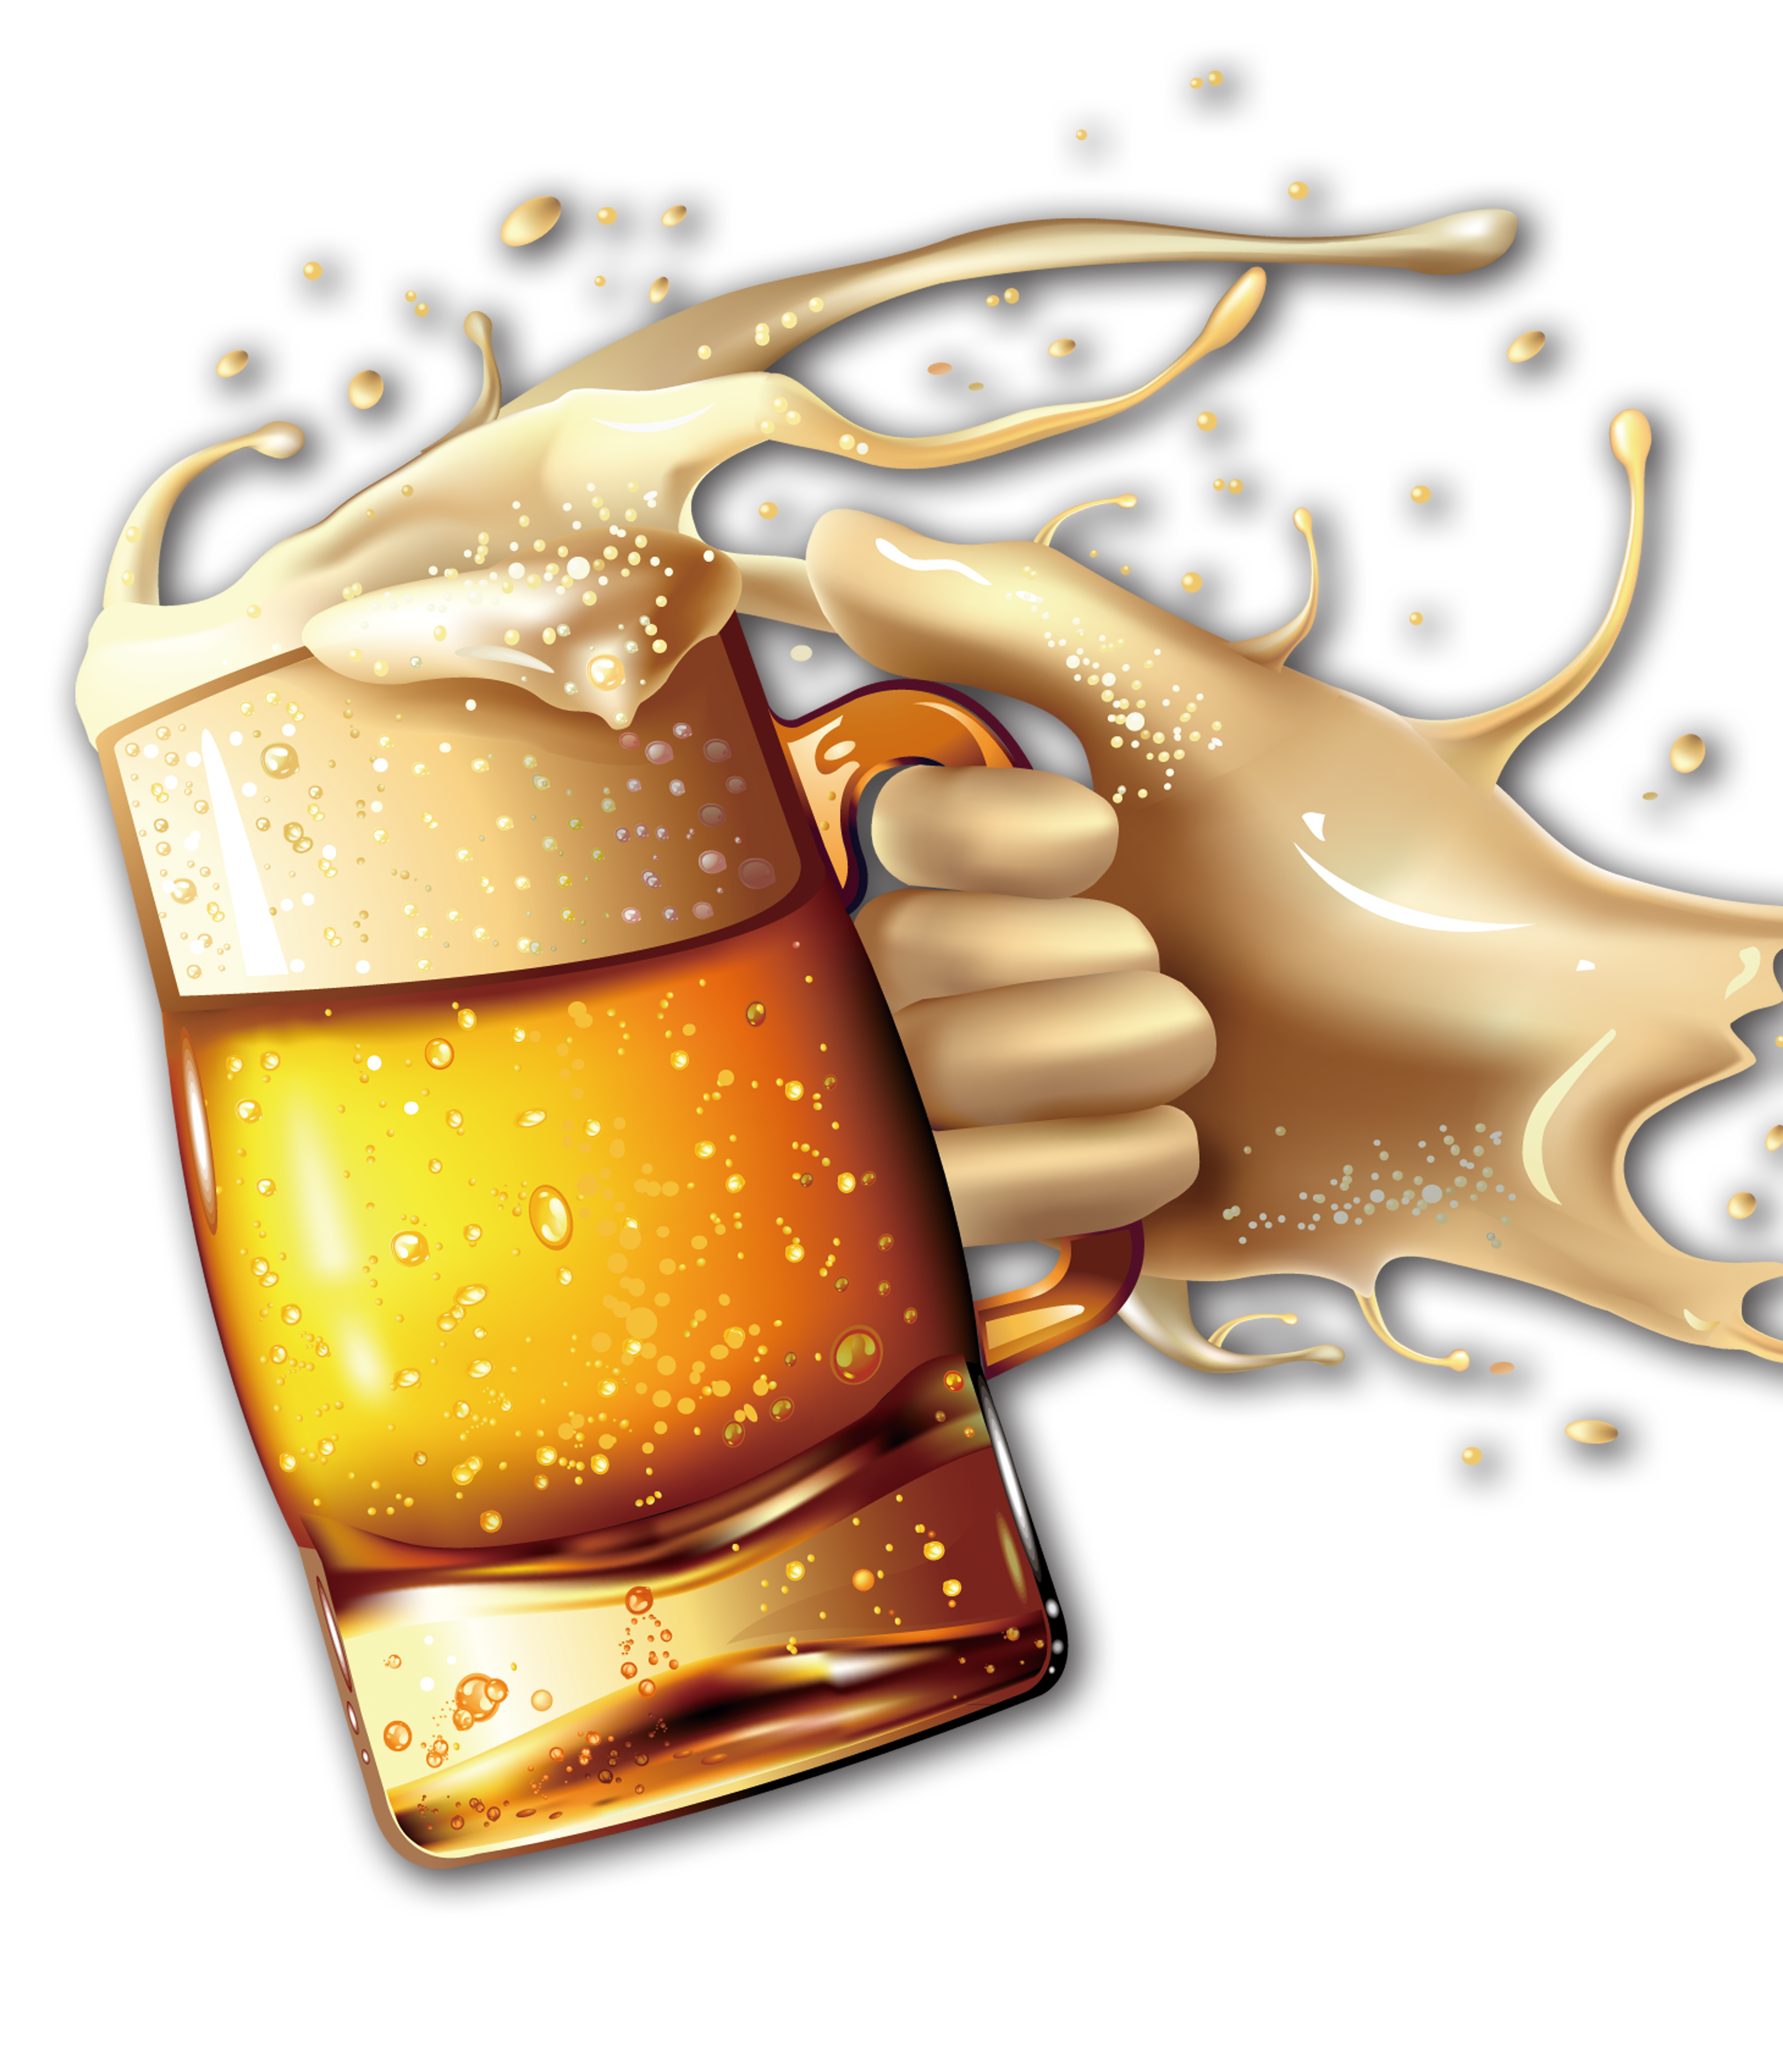 Free clipart apple beer image freeuse Free Beer Draught beer - beer 4066*4724 transprent Png Free Download ... image freeuse